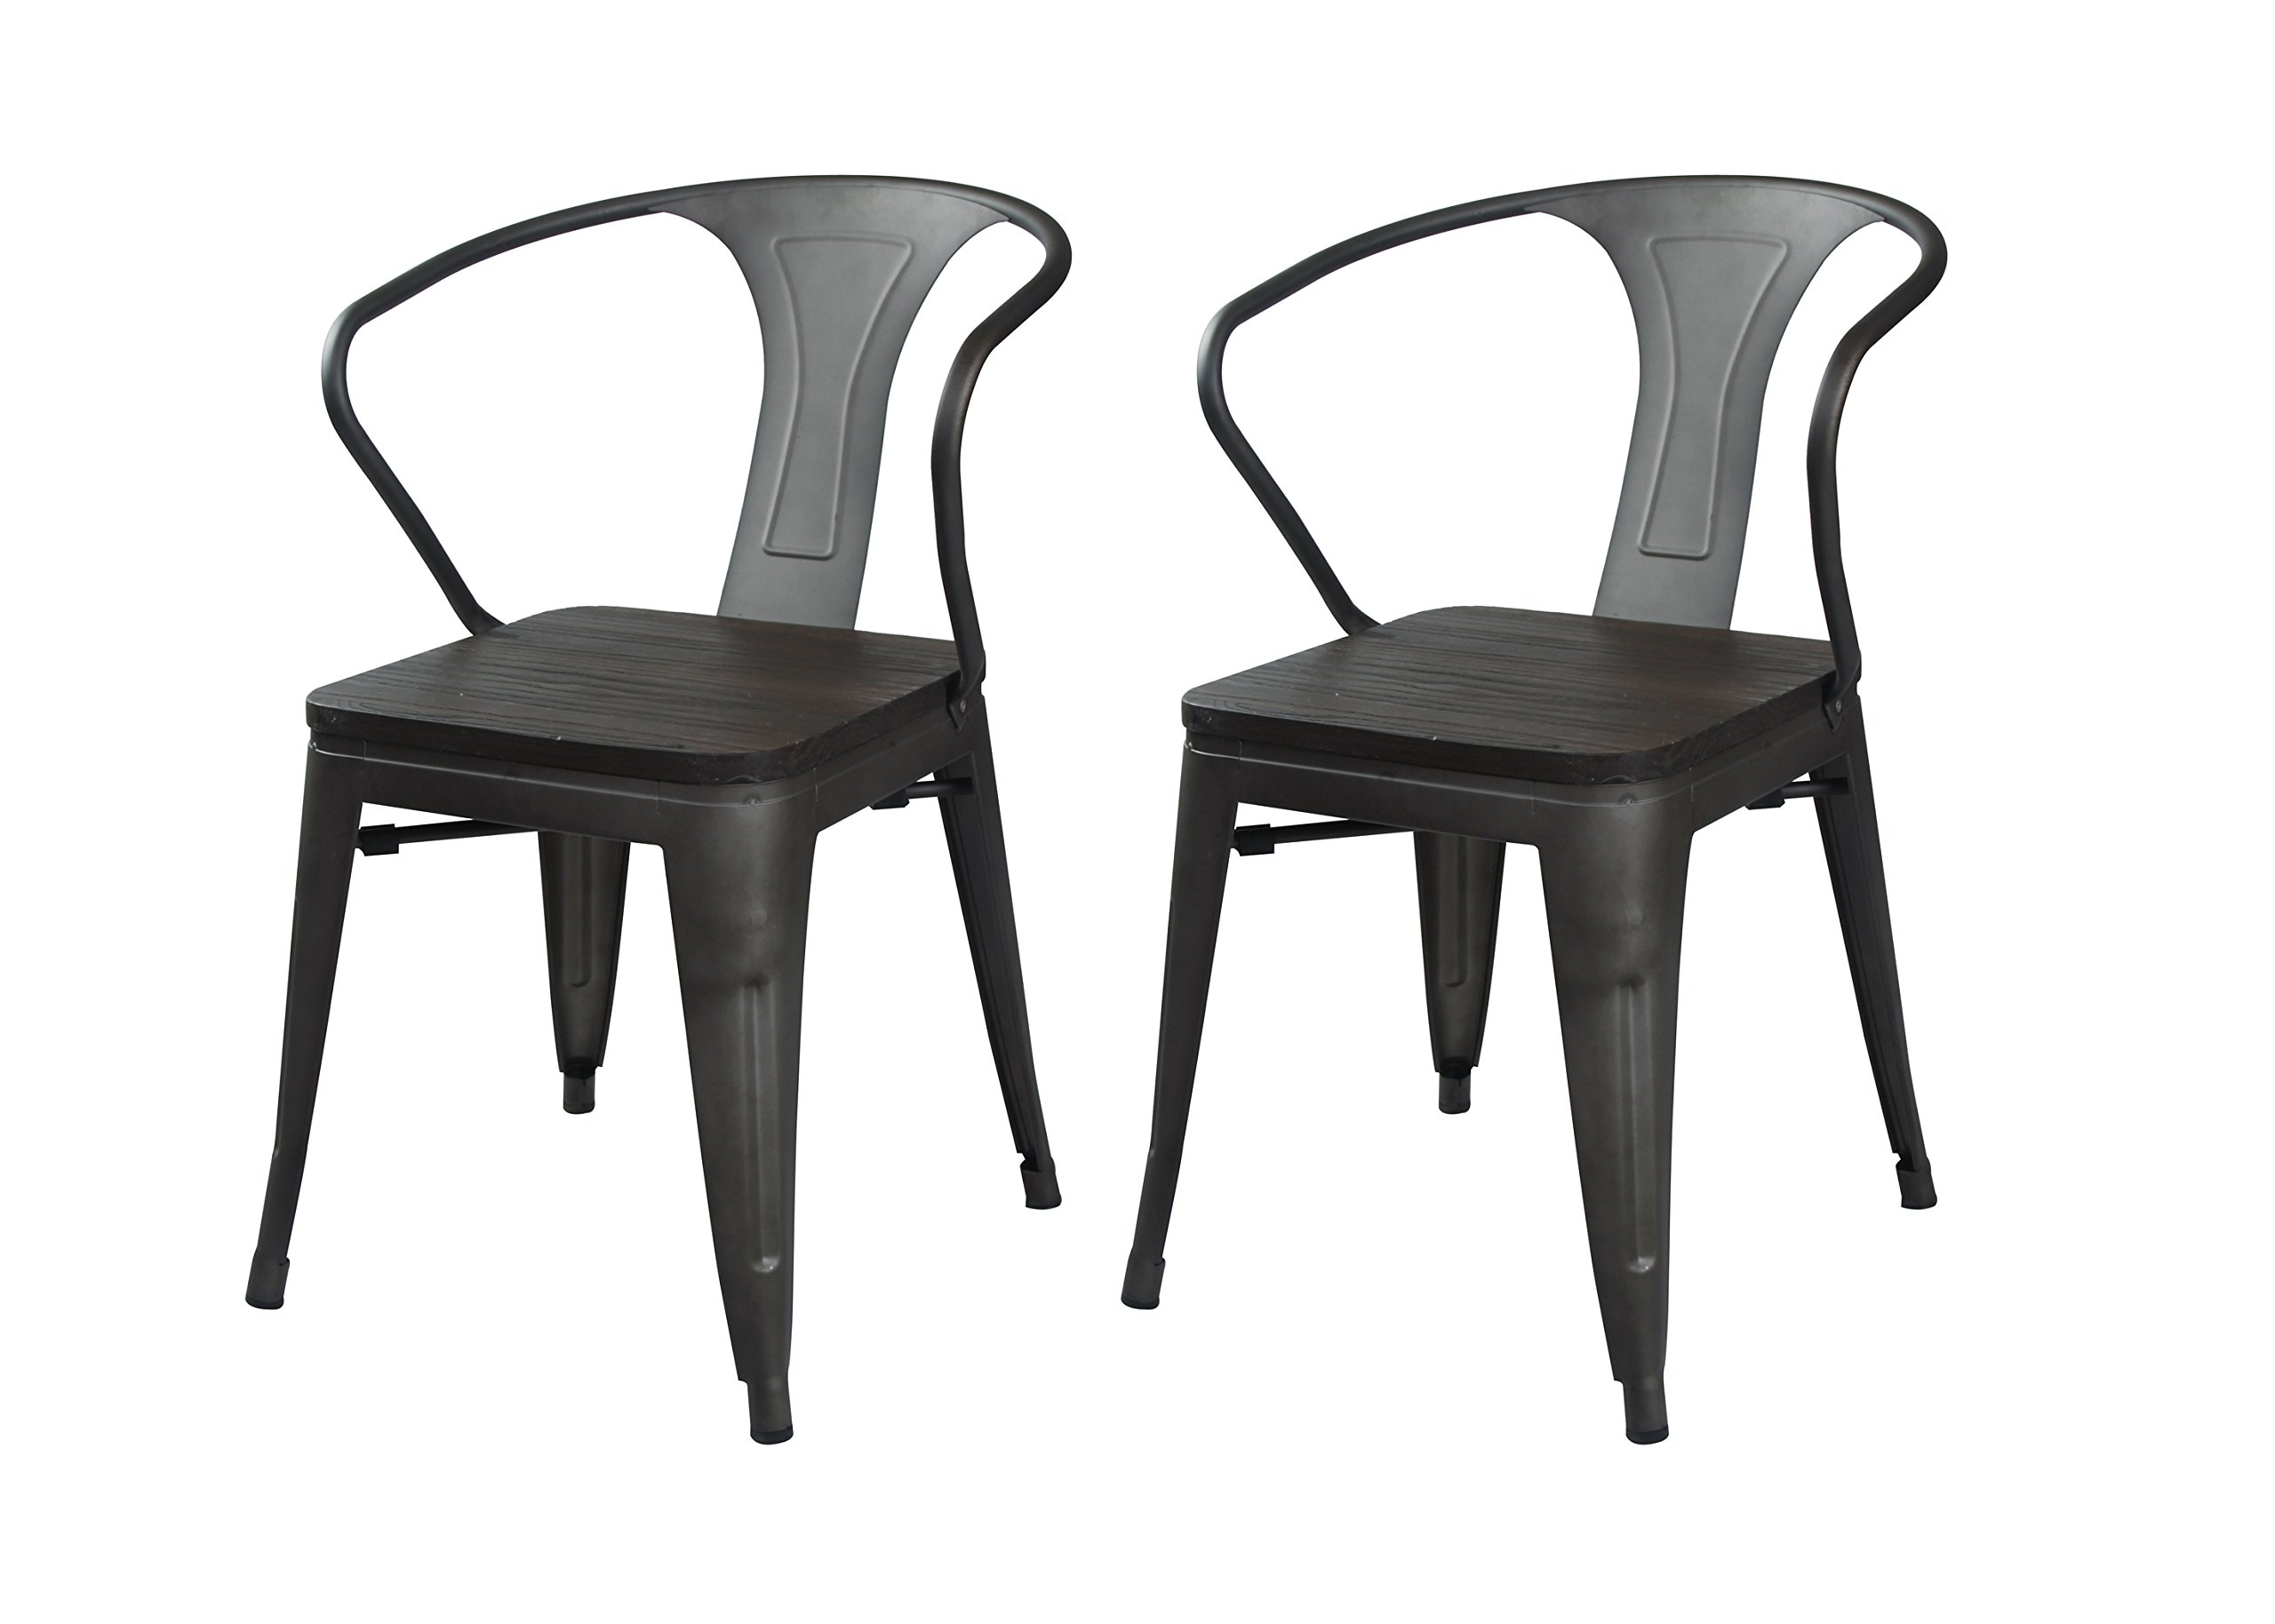 bar metal products stool steel dining industrial chairs kitchen tolix replica x chair home di cafe xavier pauchard